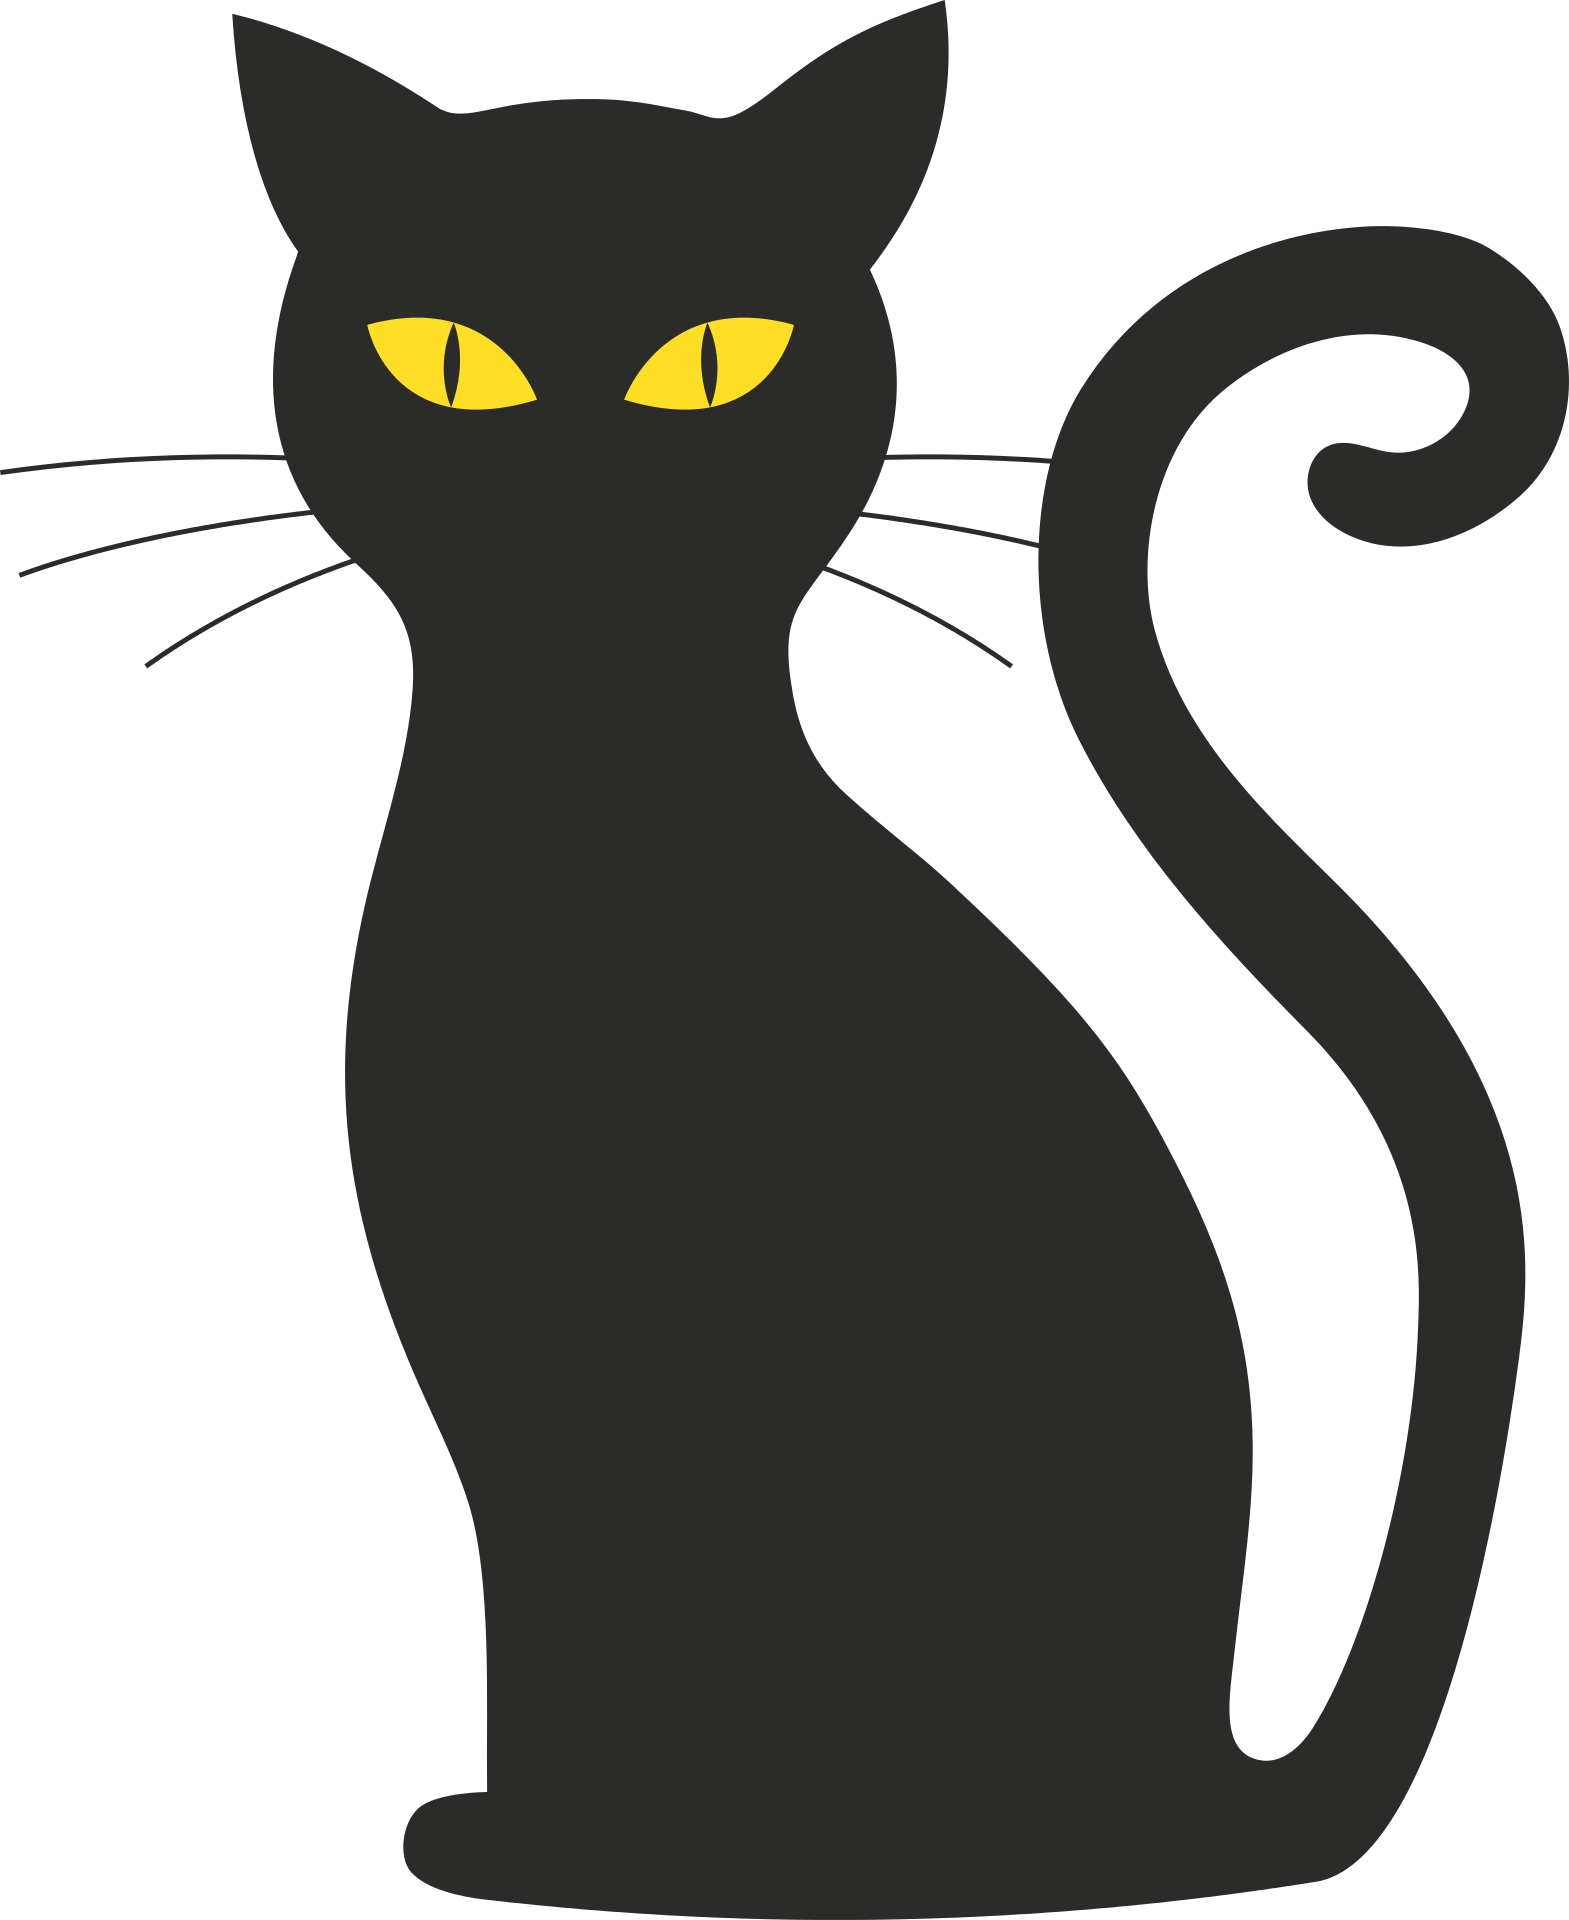 Fluffy cat clipart graphic library library Szablon kota png czarny / Cat silhouette / public domain | Kot ... graphic library library